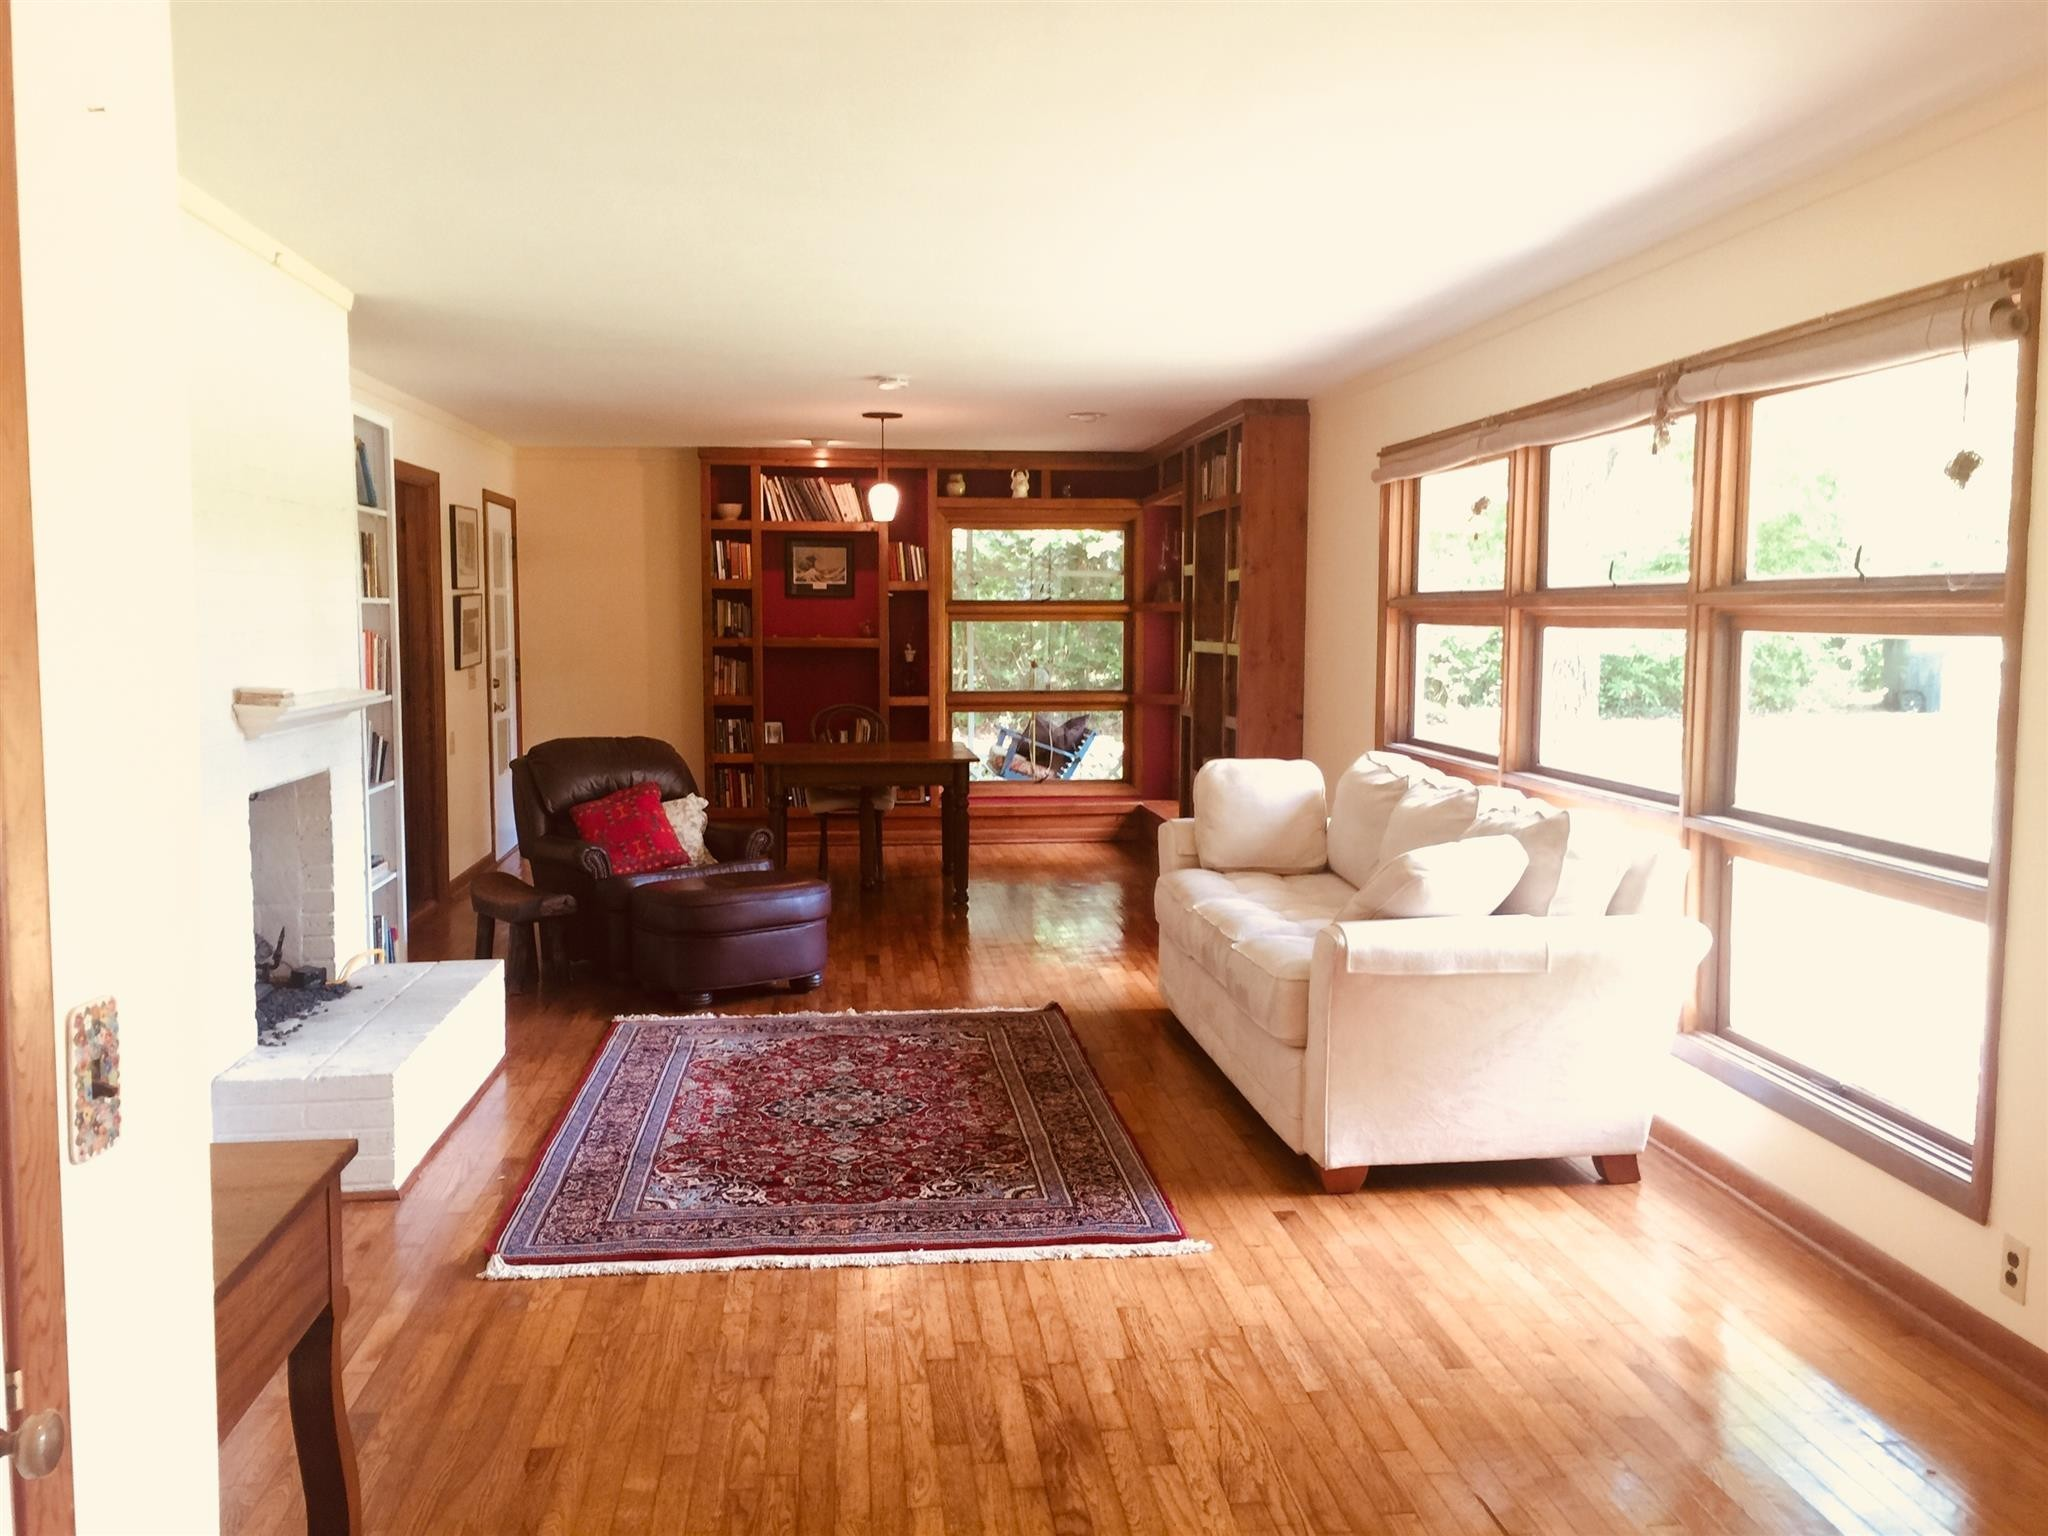 482 Tennessee Ave Property Photo - Sewanee, TN real estate listing